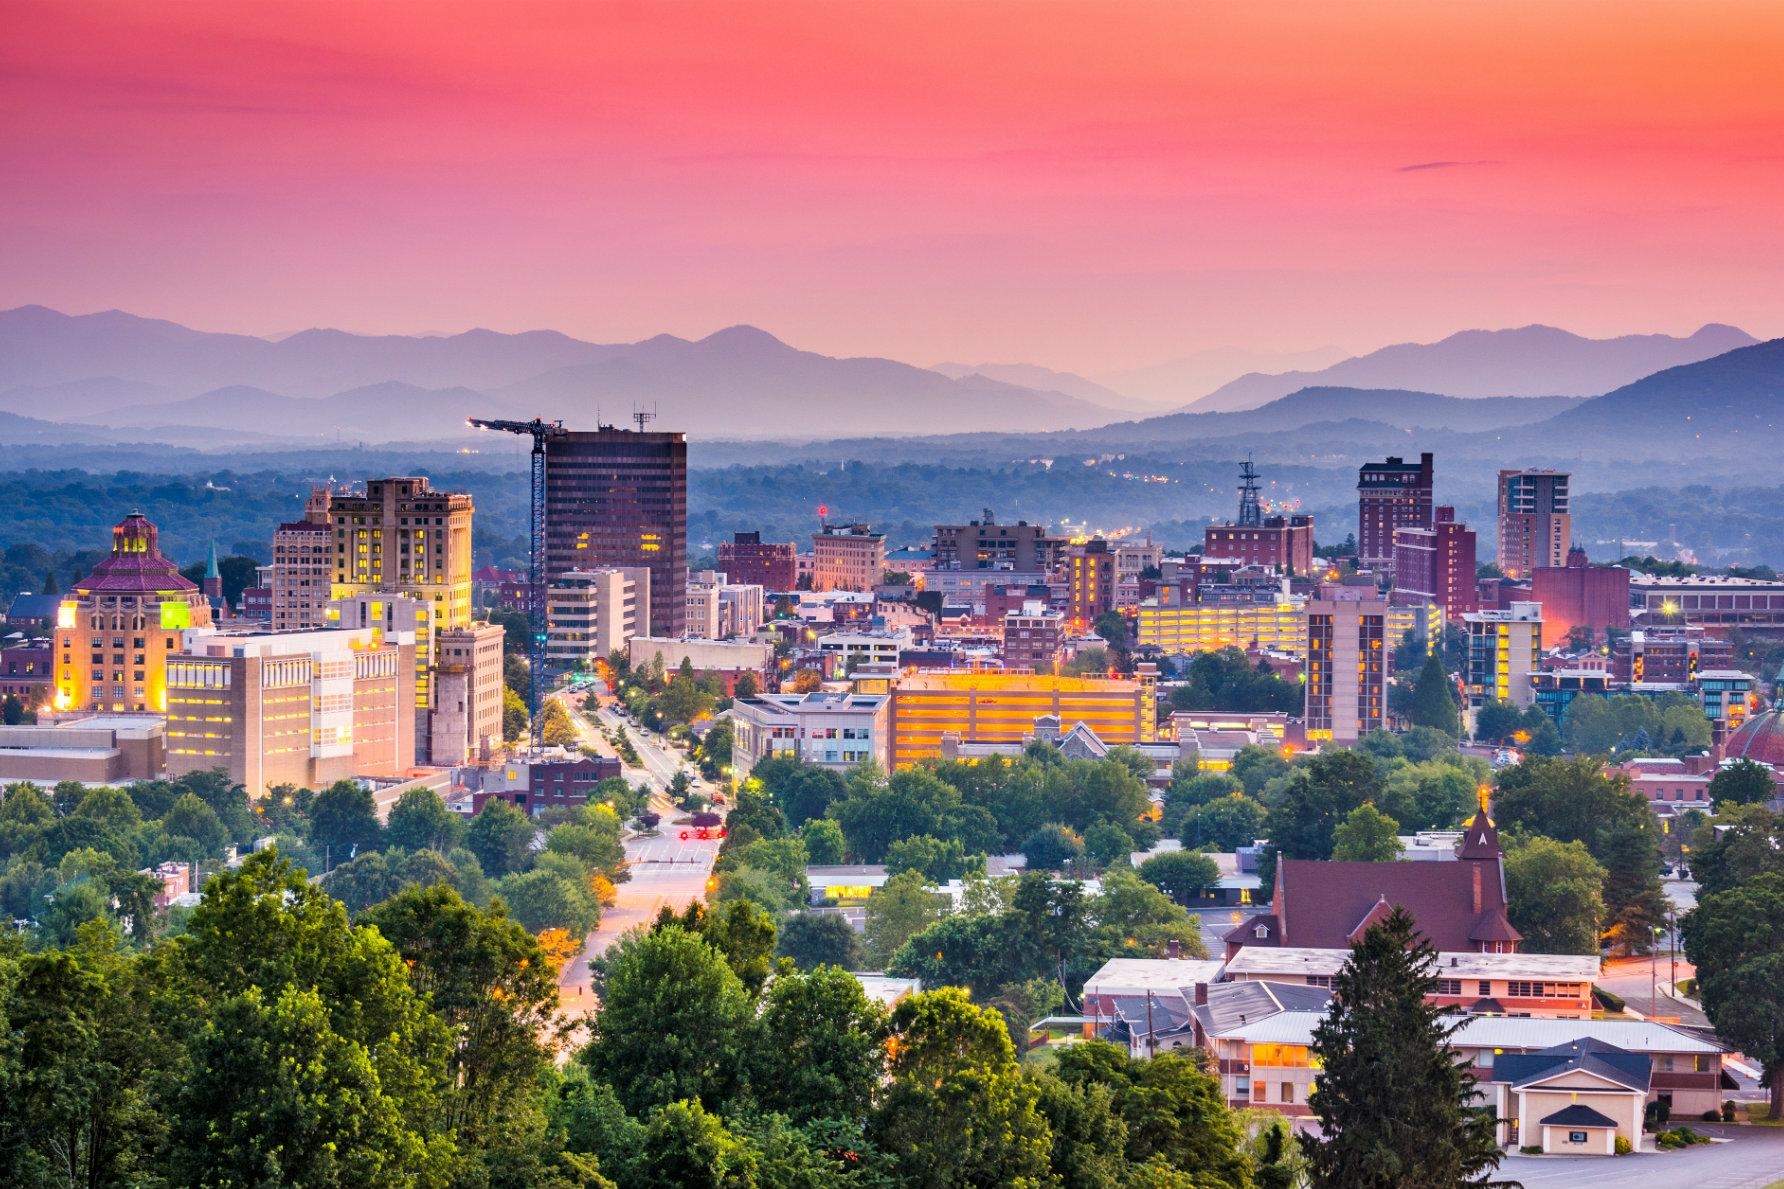 Where To Stay And What To See In Asheville